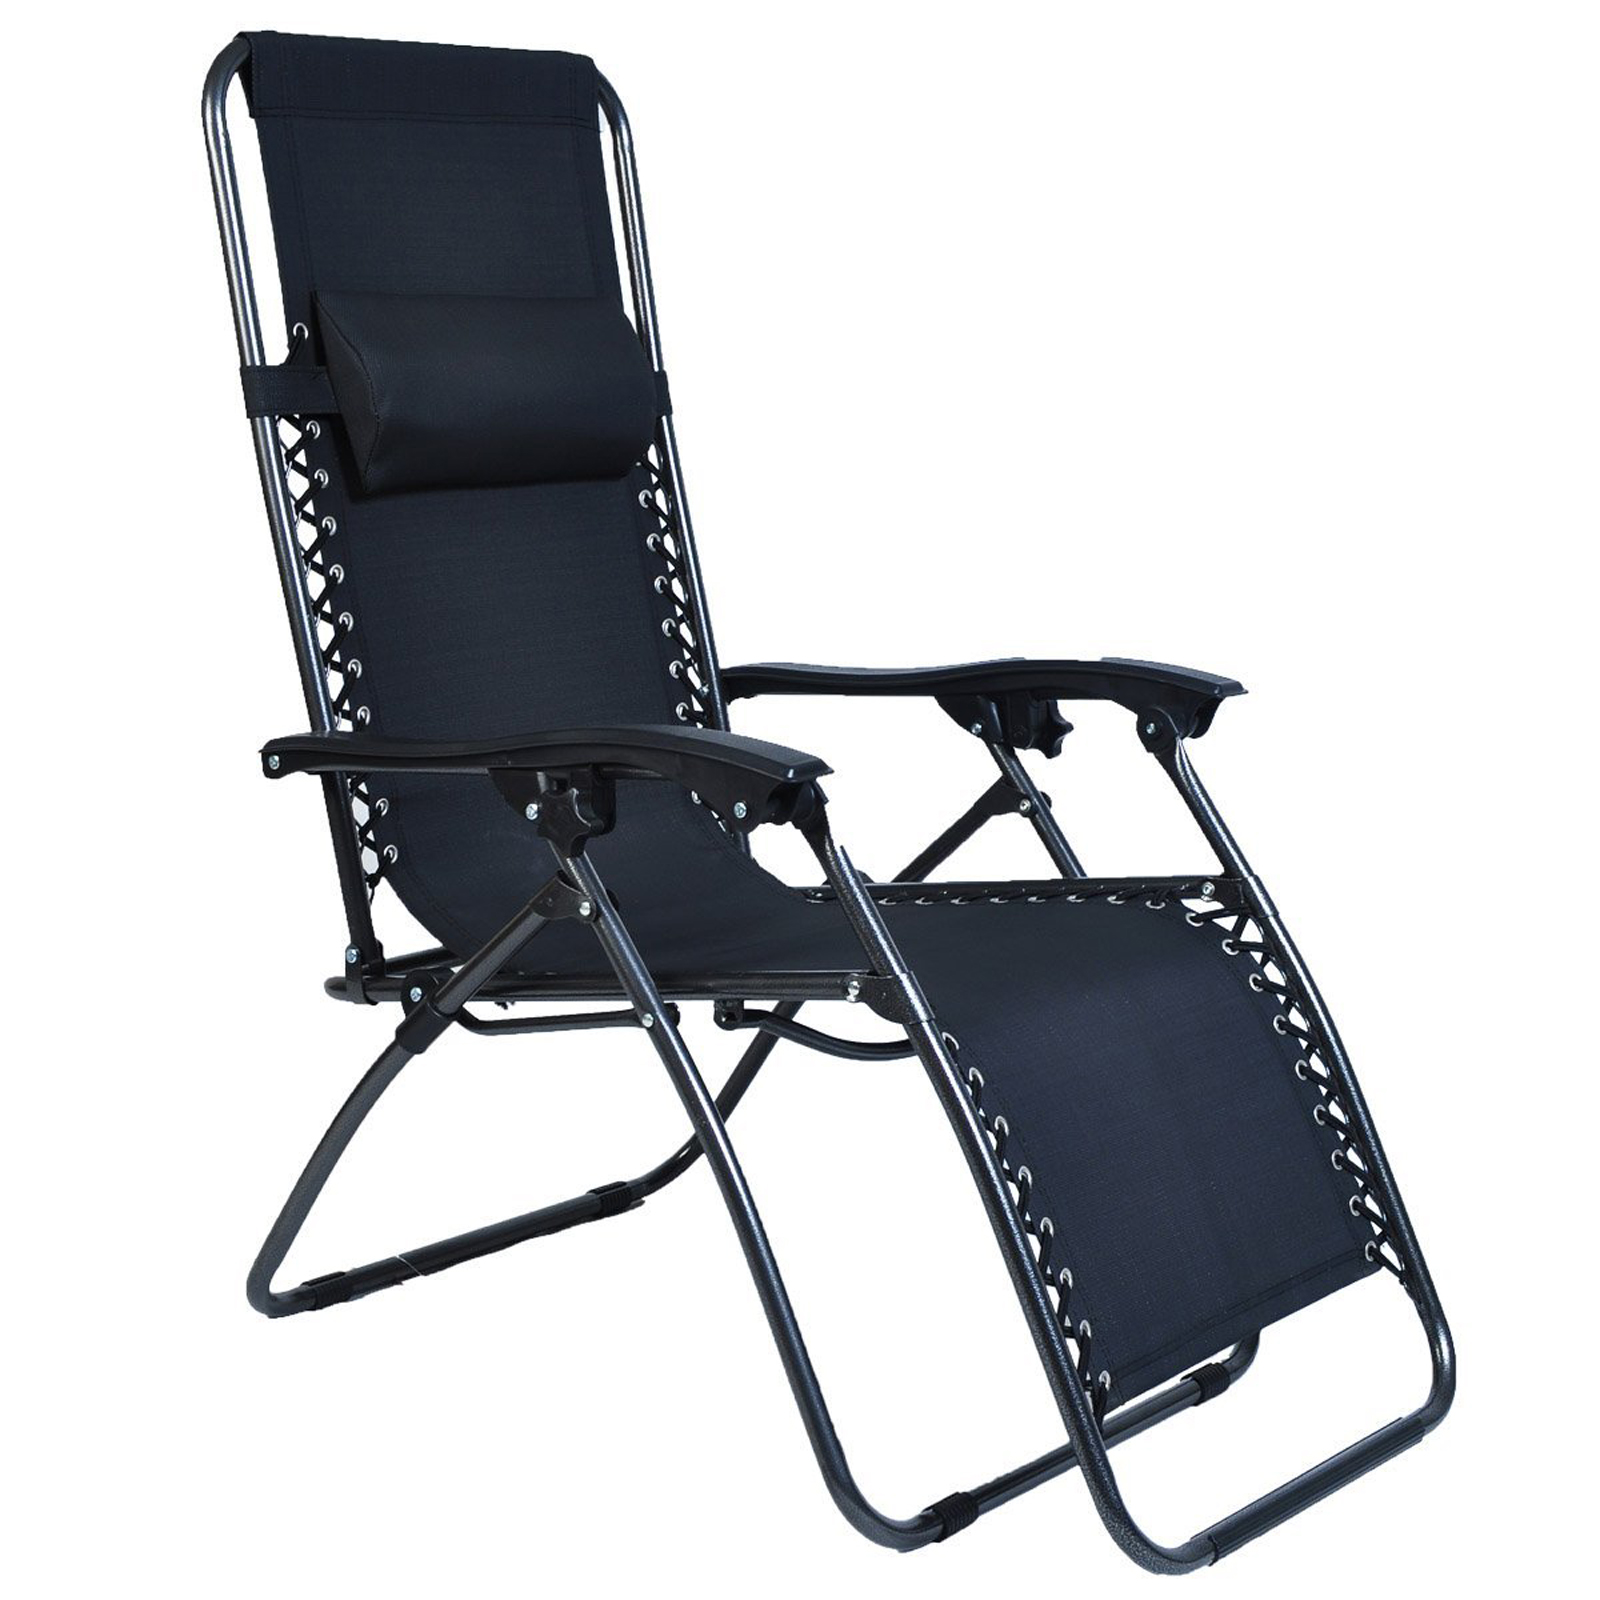 Folding Lounge Chairs Zero Folding Patio Outdoor Lounge Gravity Chair Recliner